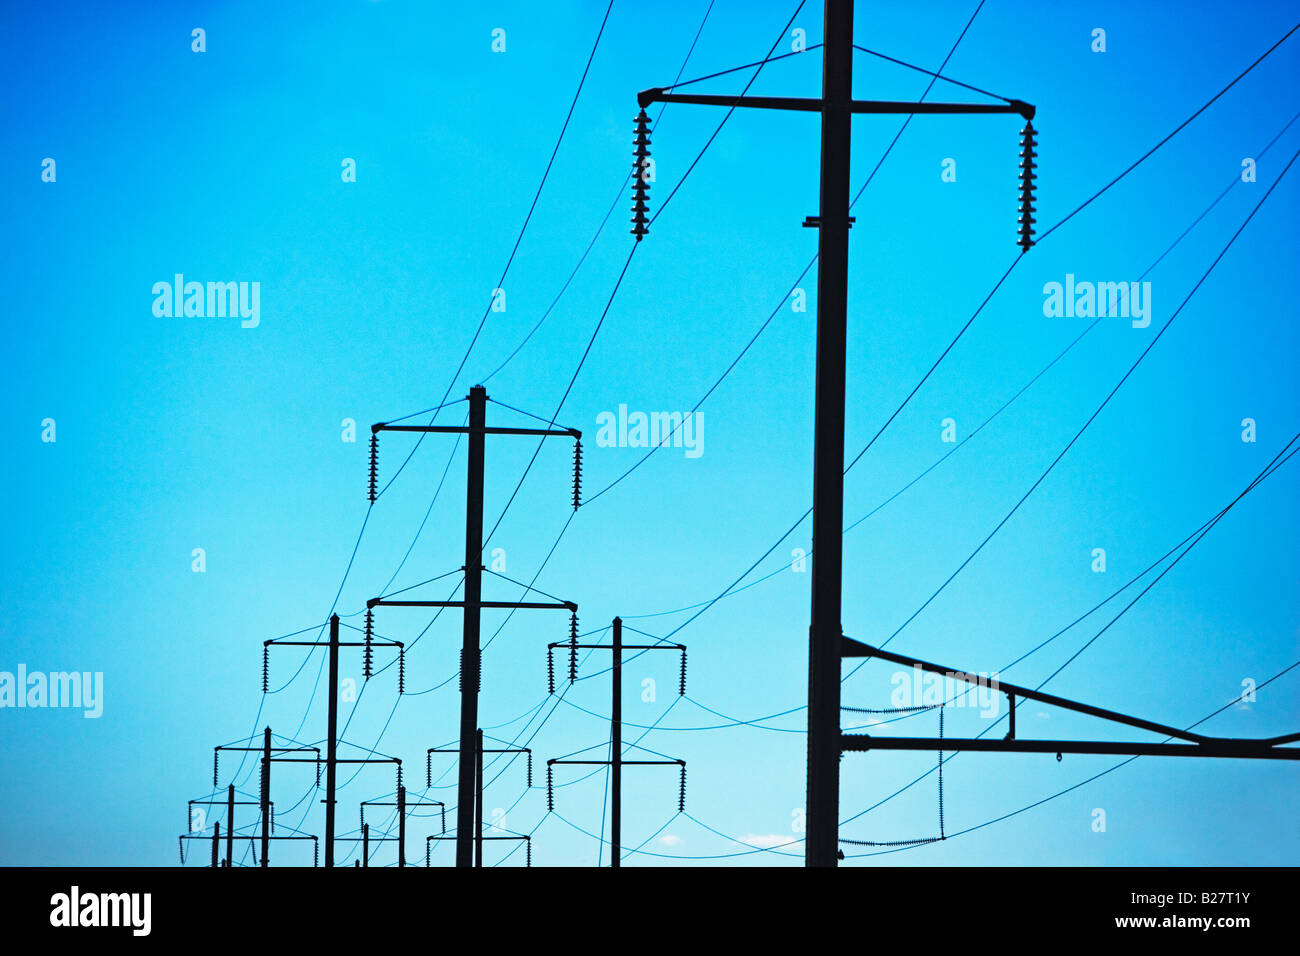 Low angle view of utility poles - Stock Image